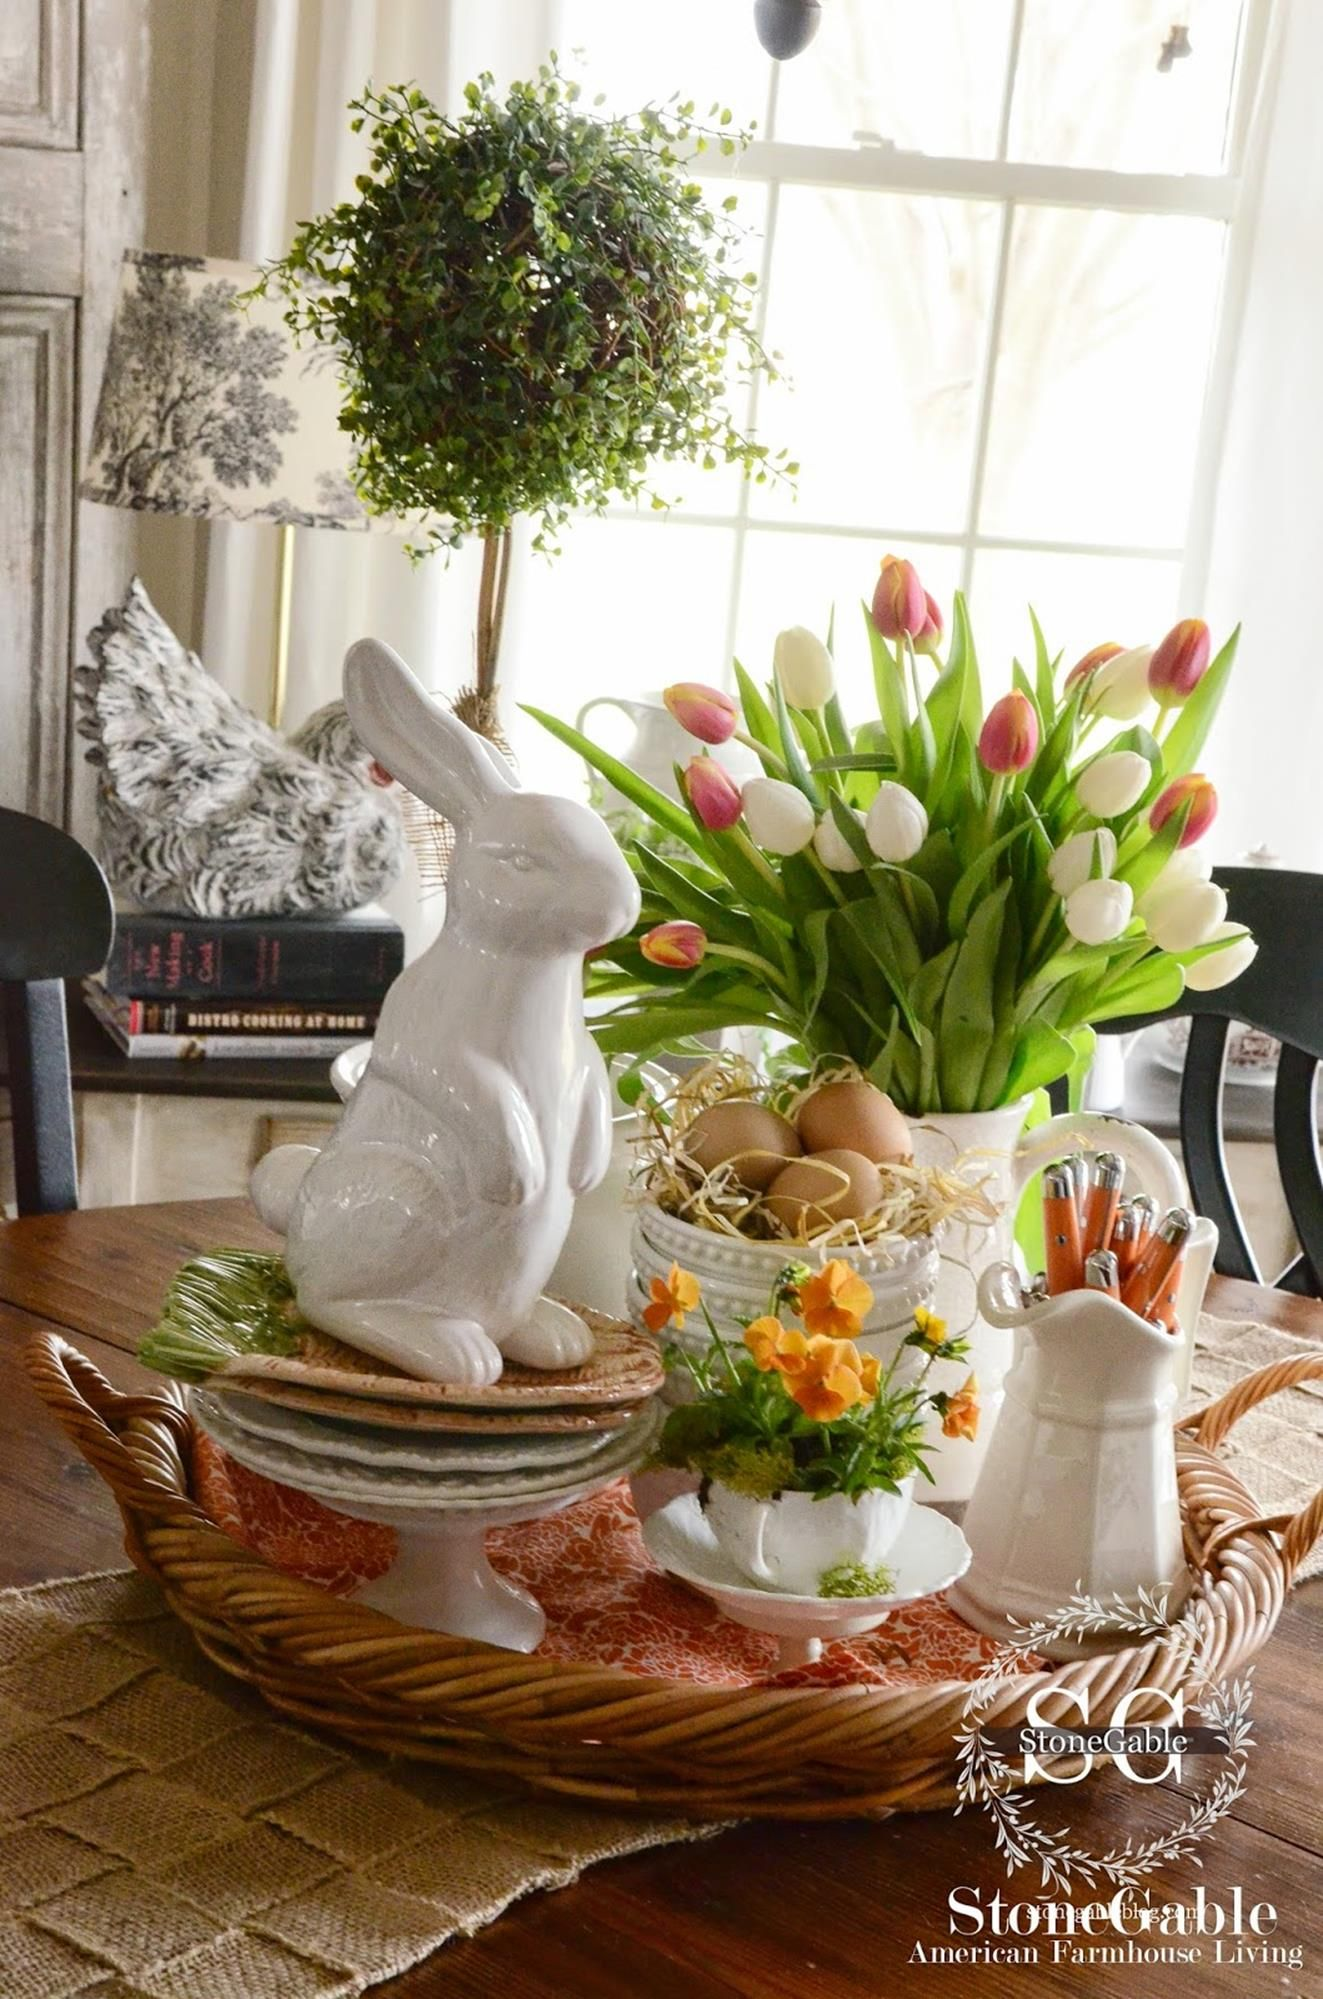 Living At Home Ostern 28 Stunning Spring Kitchen Decorating Ideas On A Budget